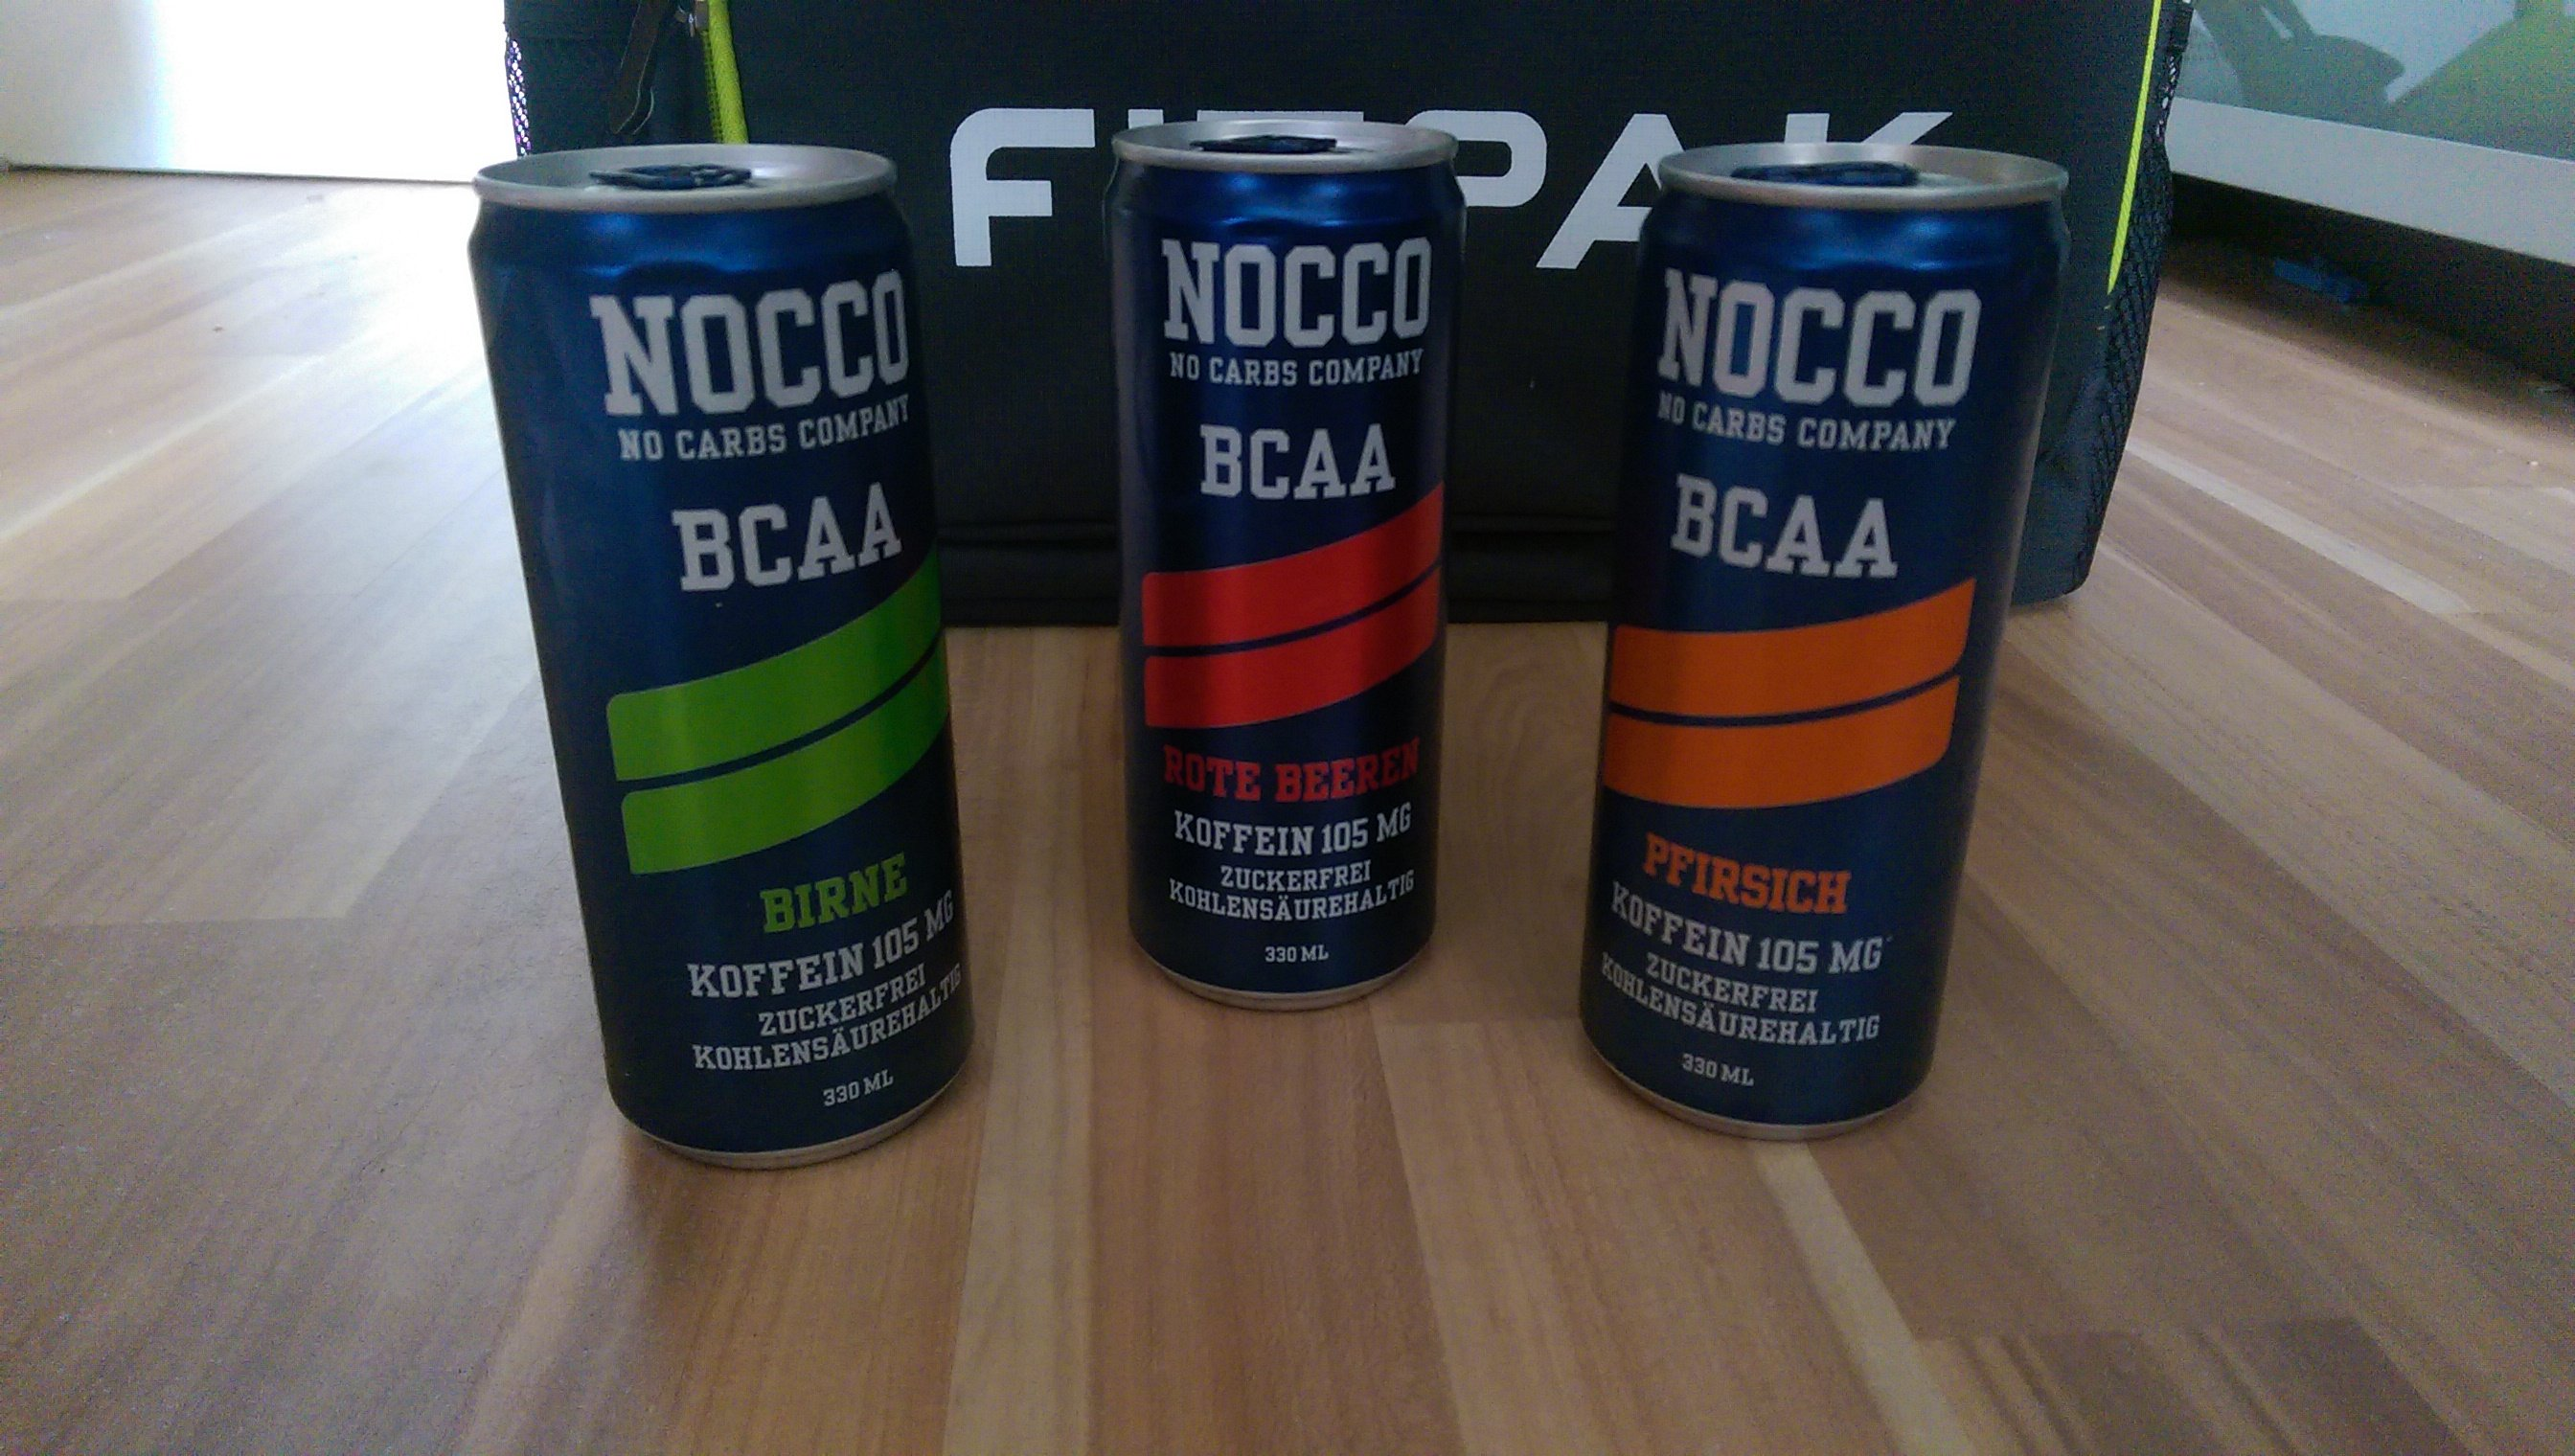 Nocco BCAA Energy Drink - Produktreview